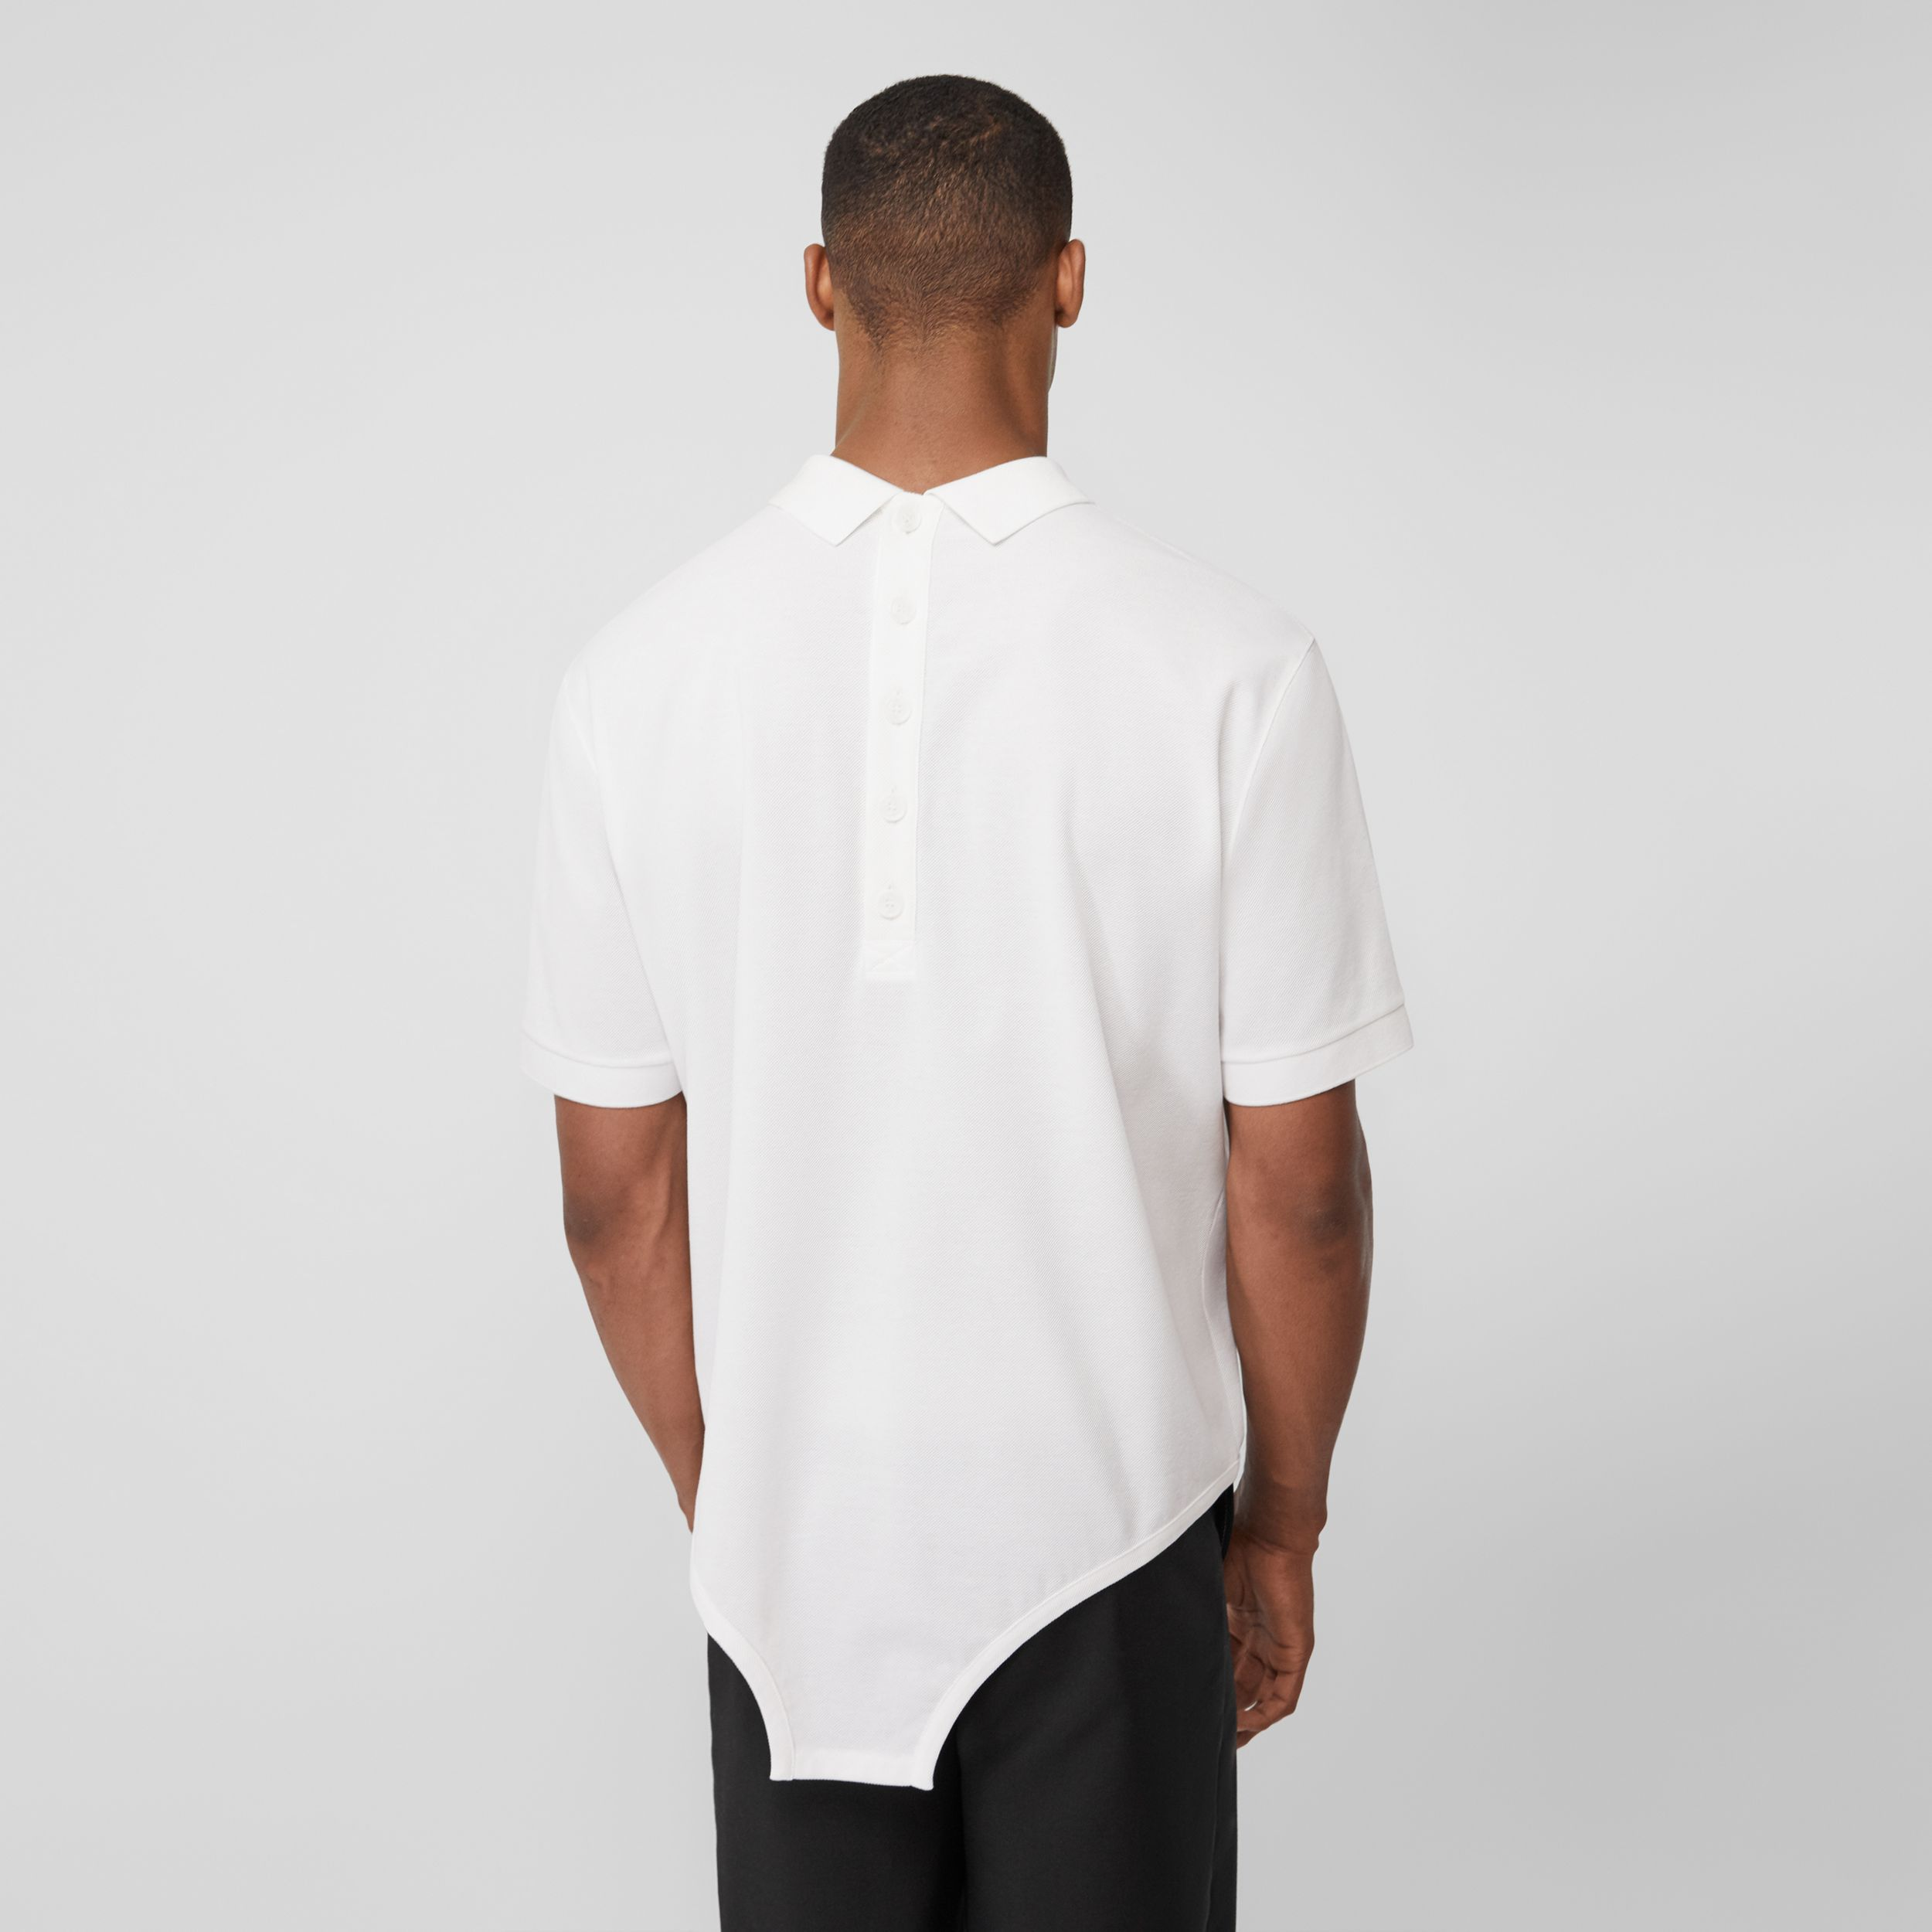 Cut-out Hem Cotton Reconstructed Polo Shirt in Optic White - Men | Burberry Hong Kong S.A.R. - 3